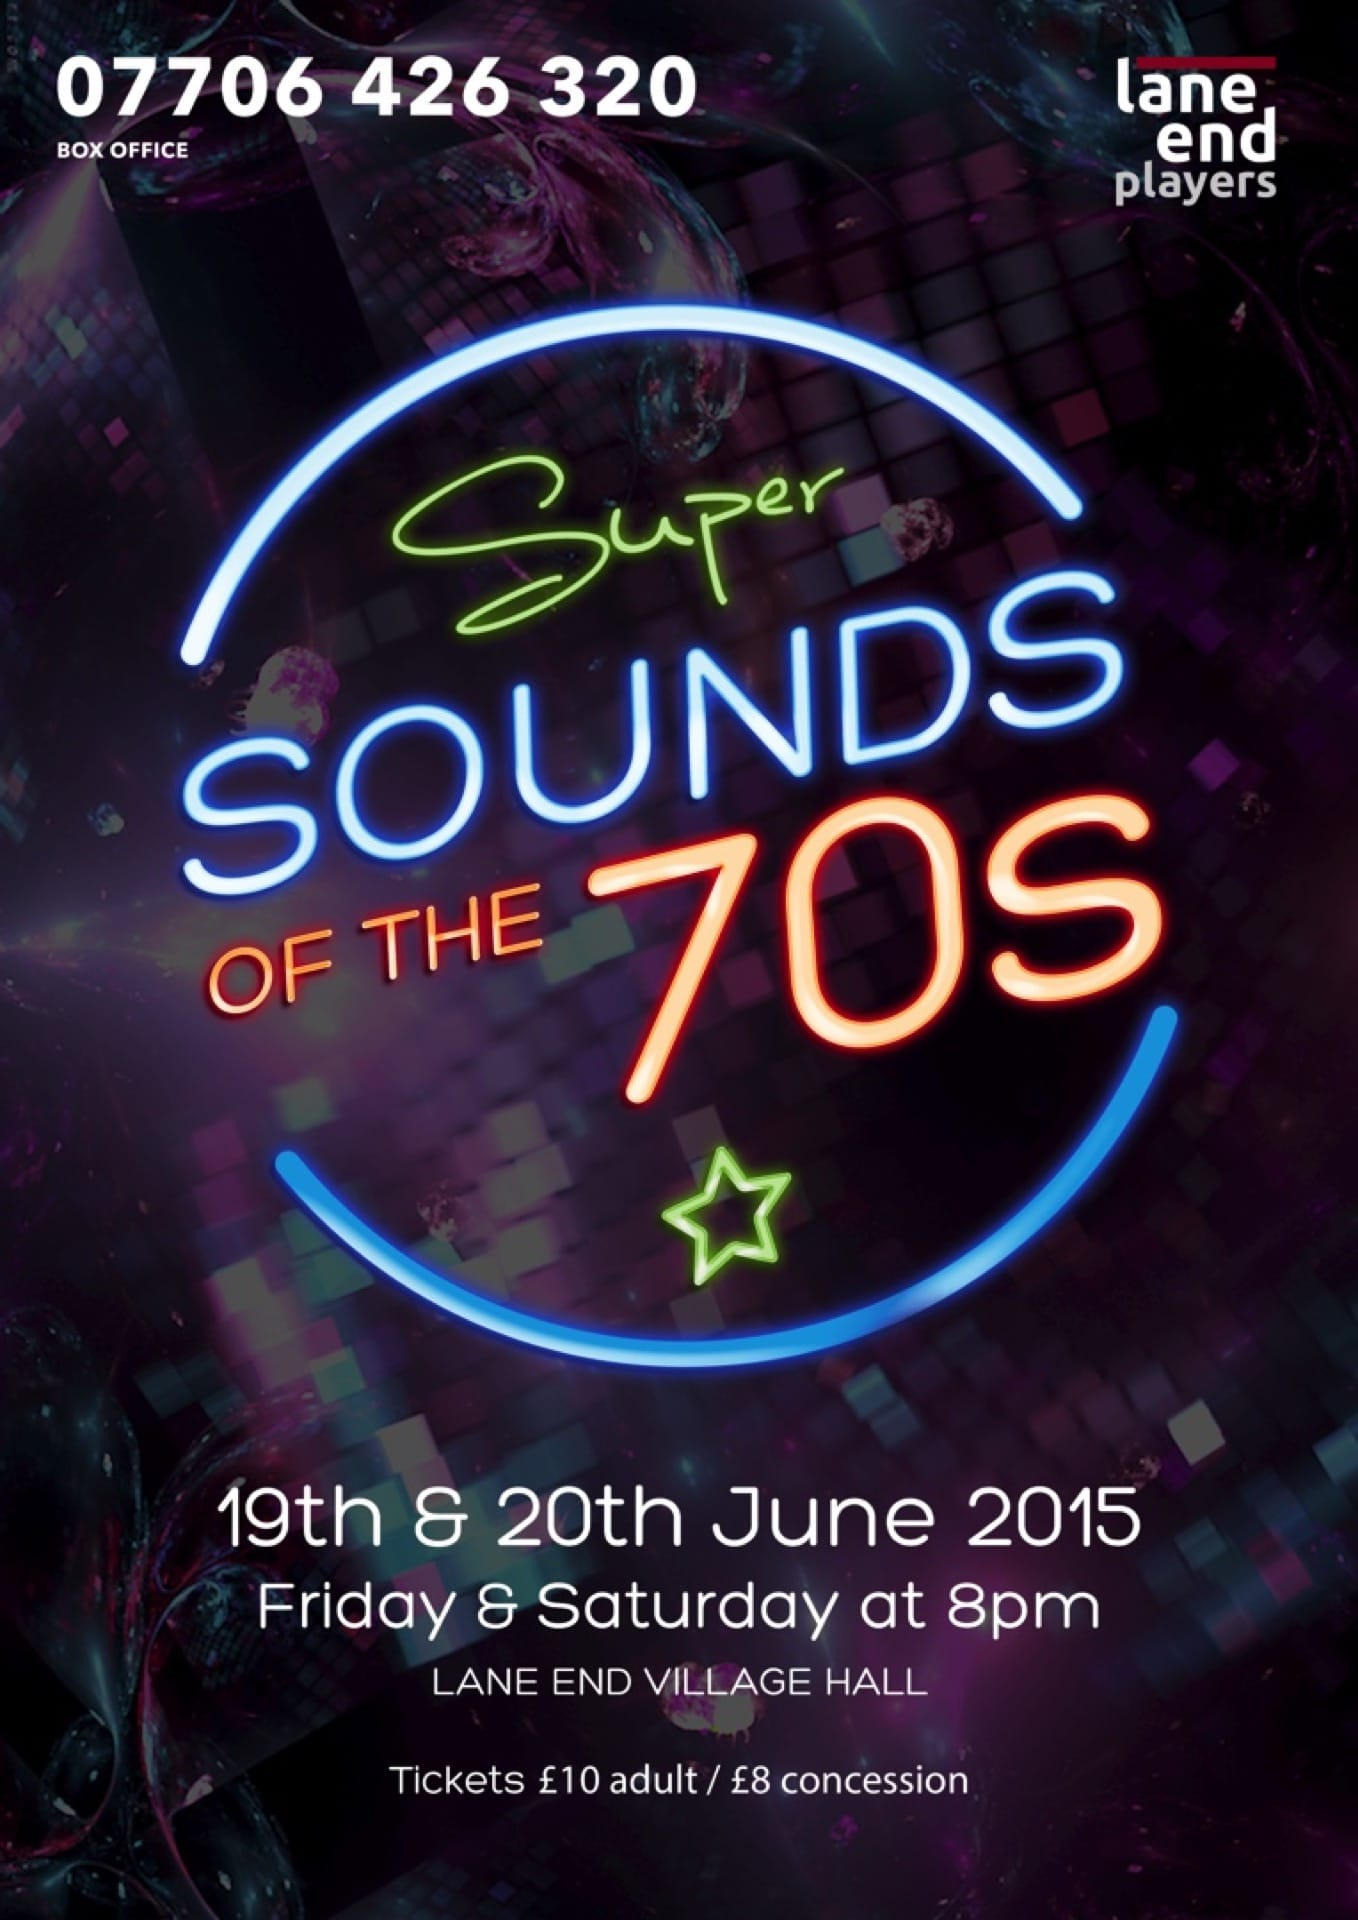 Super Sounds of the 70s